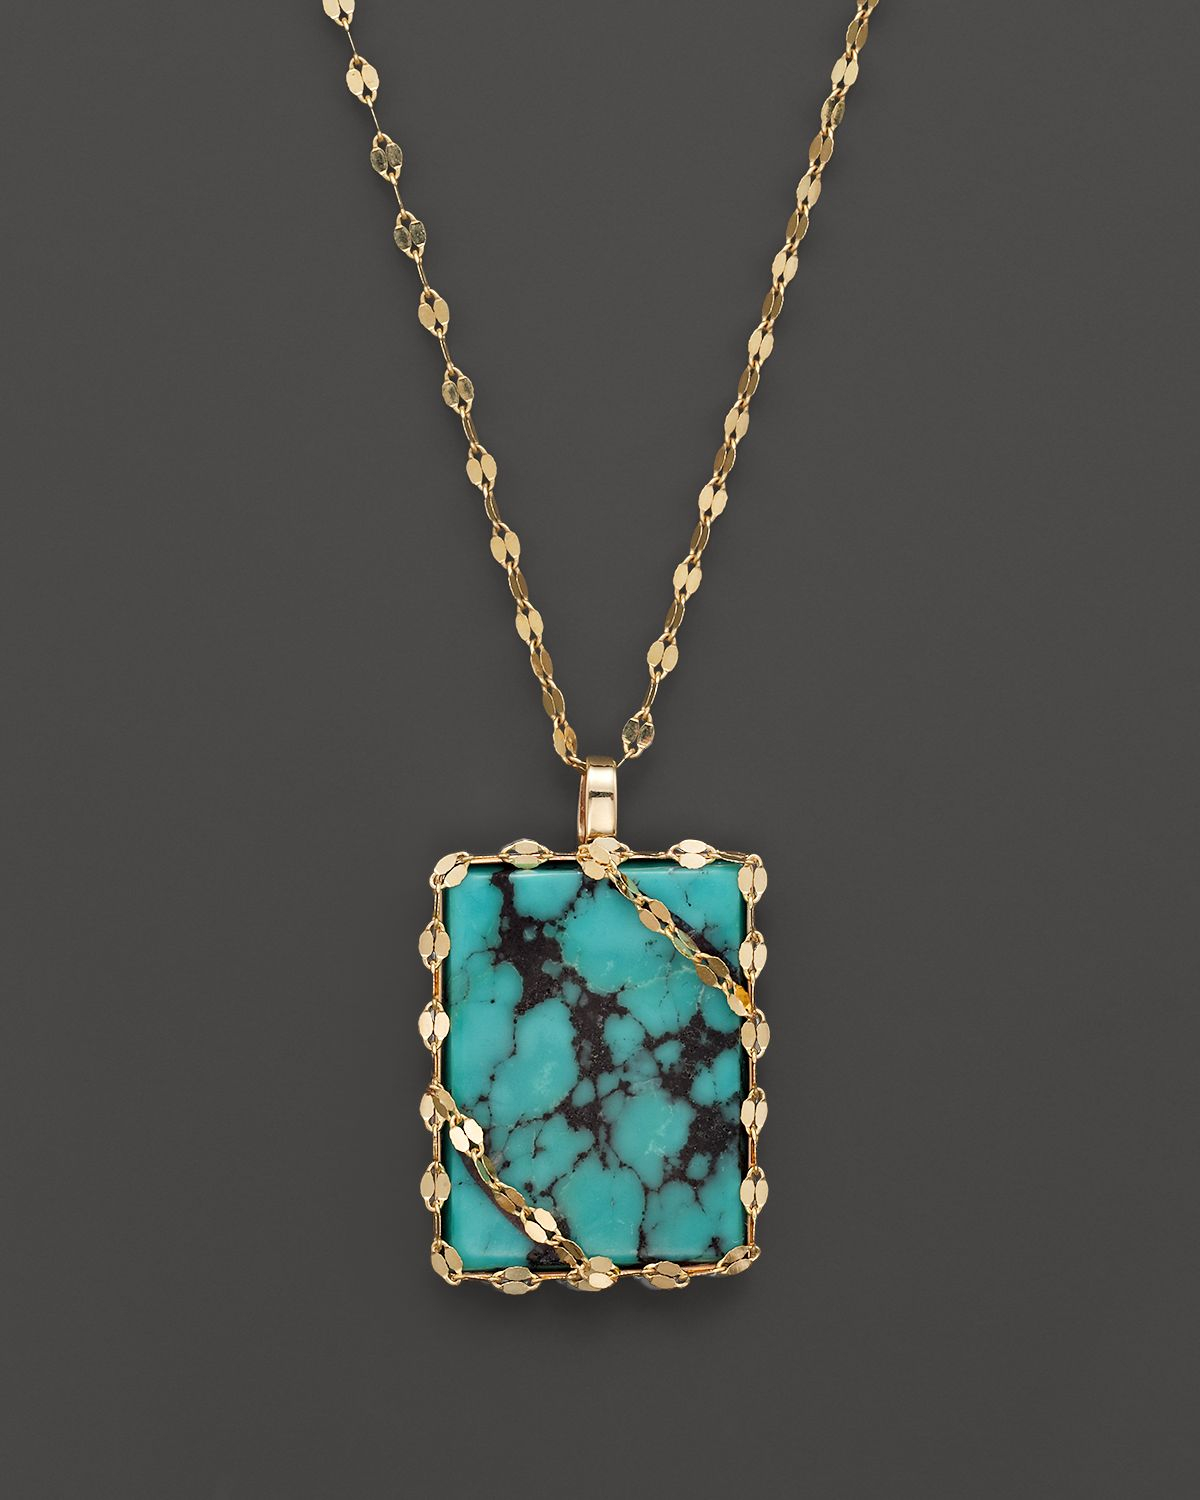 Lyst lana jewelry 14k gold turquoise pendant necklace 18 in metallic gallery audiocablefo